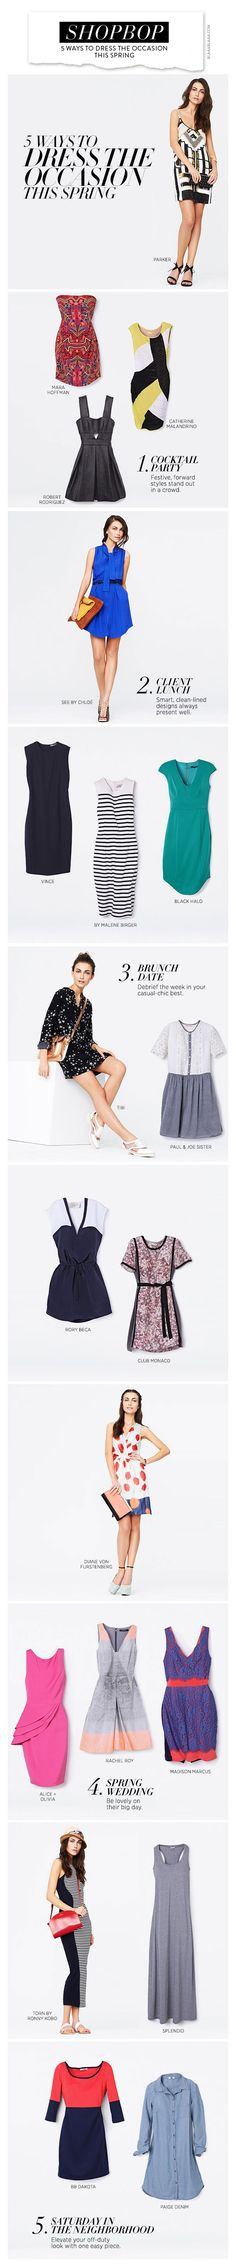 Shopbop's 5 Ways to Dress the Occasion this Spring_ good tips